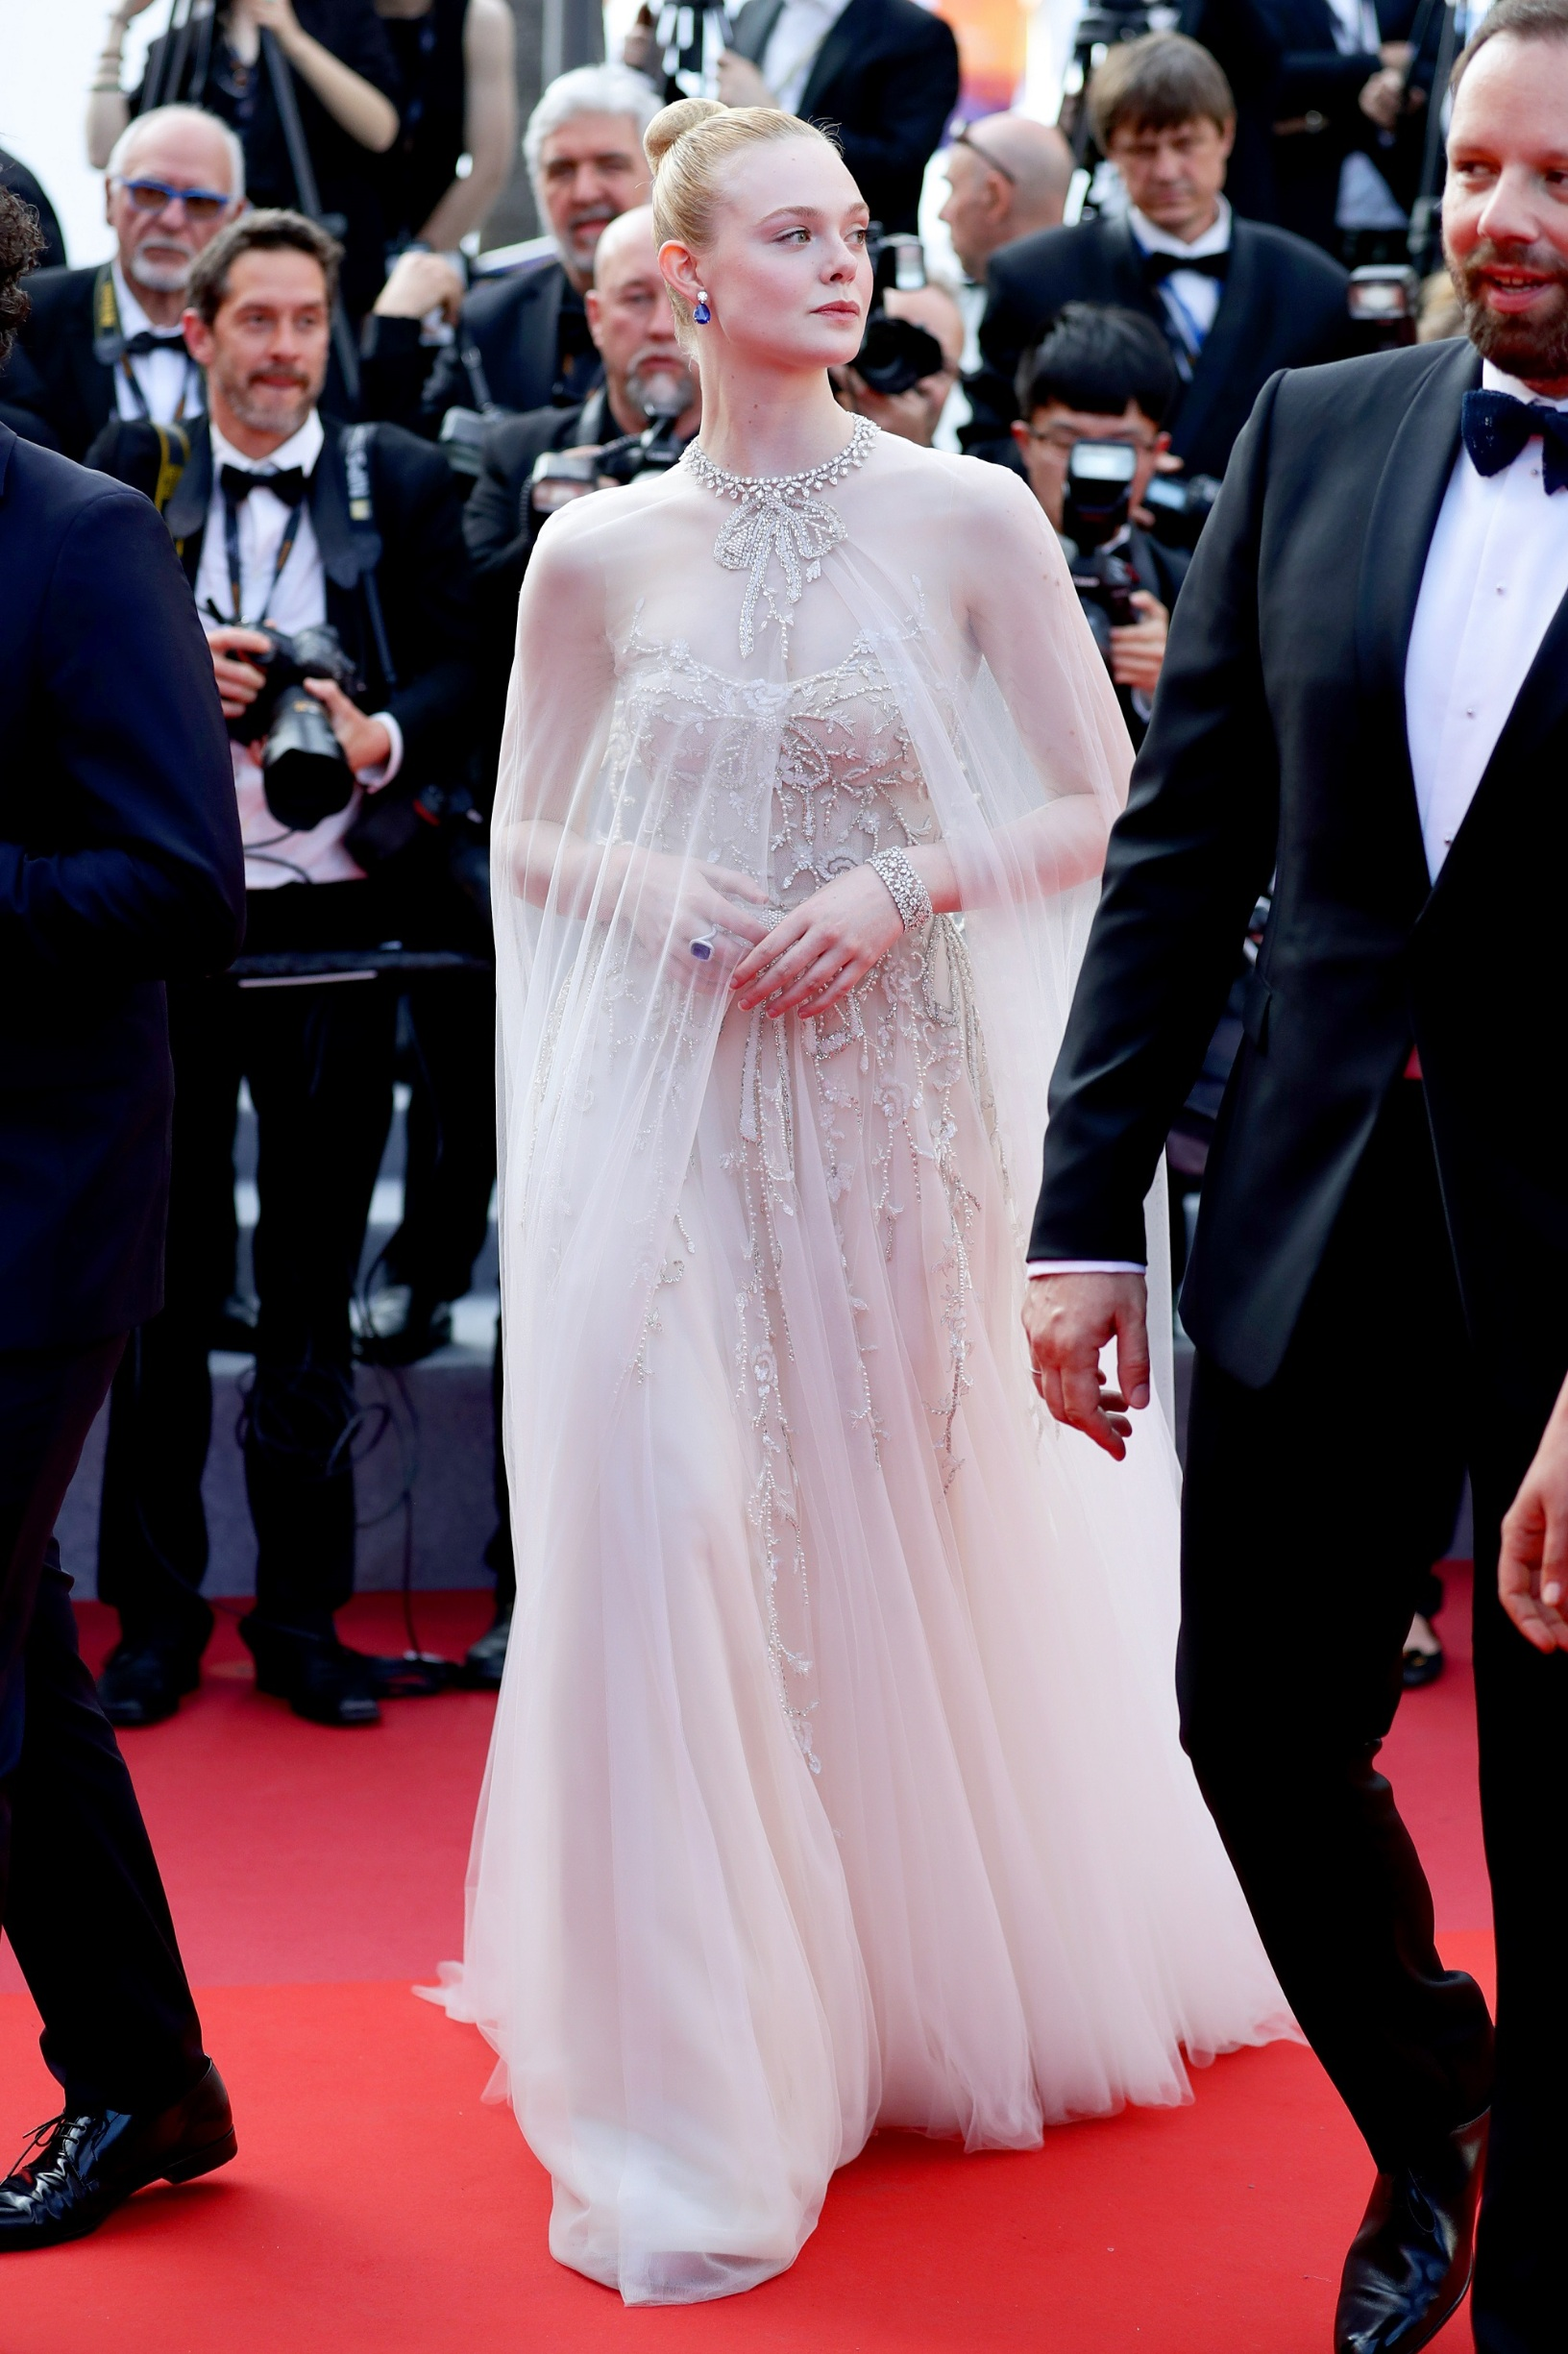 CANNES, FRANCE - MAY 25: Elle Fanning attends the closing ceremony screening of